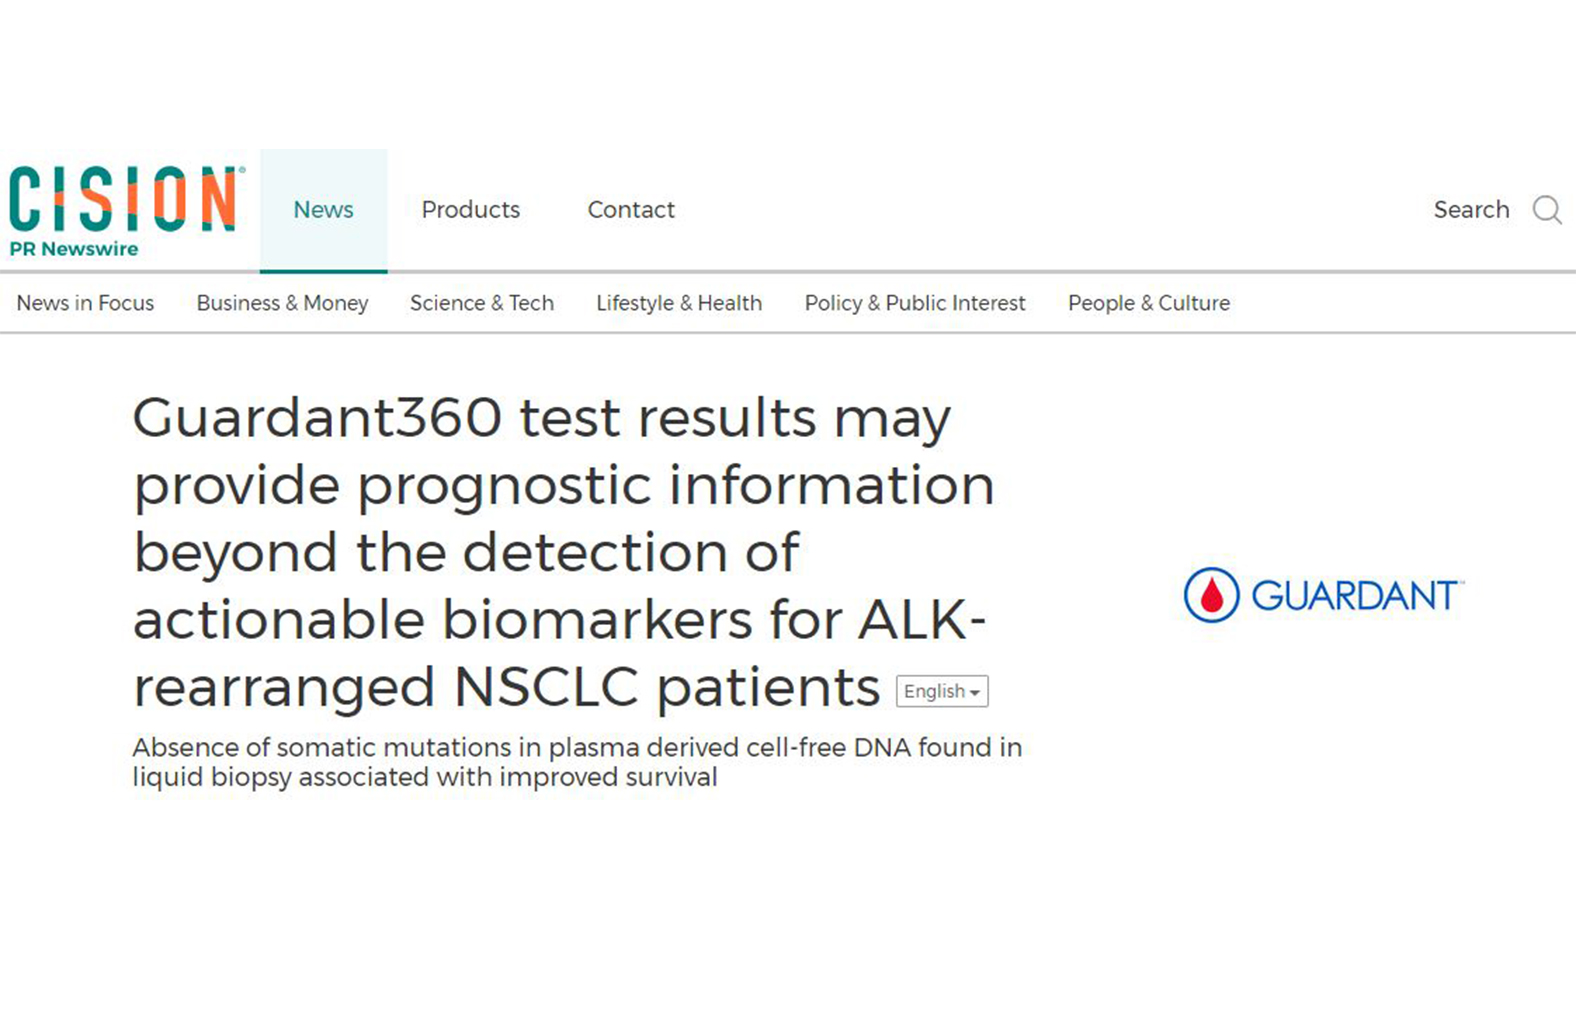 Guardant360 test results may provide prognostic information beyond the detection of actionable biomarkers for ALK-rearranged NSCLC patients